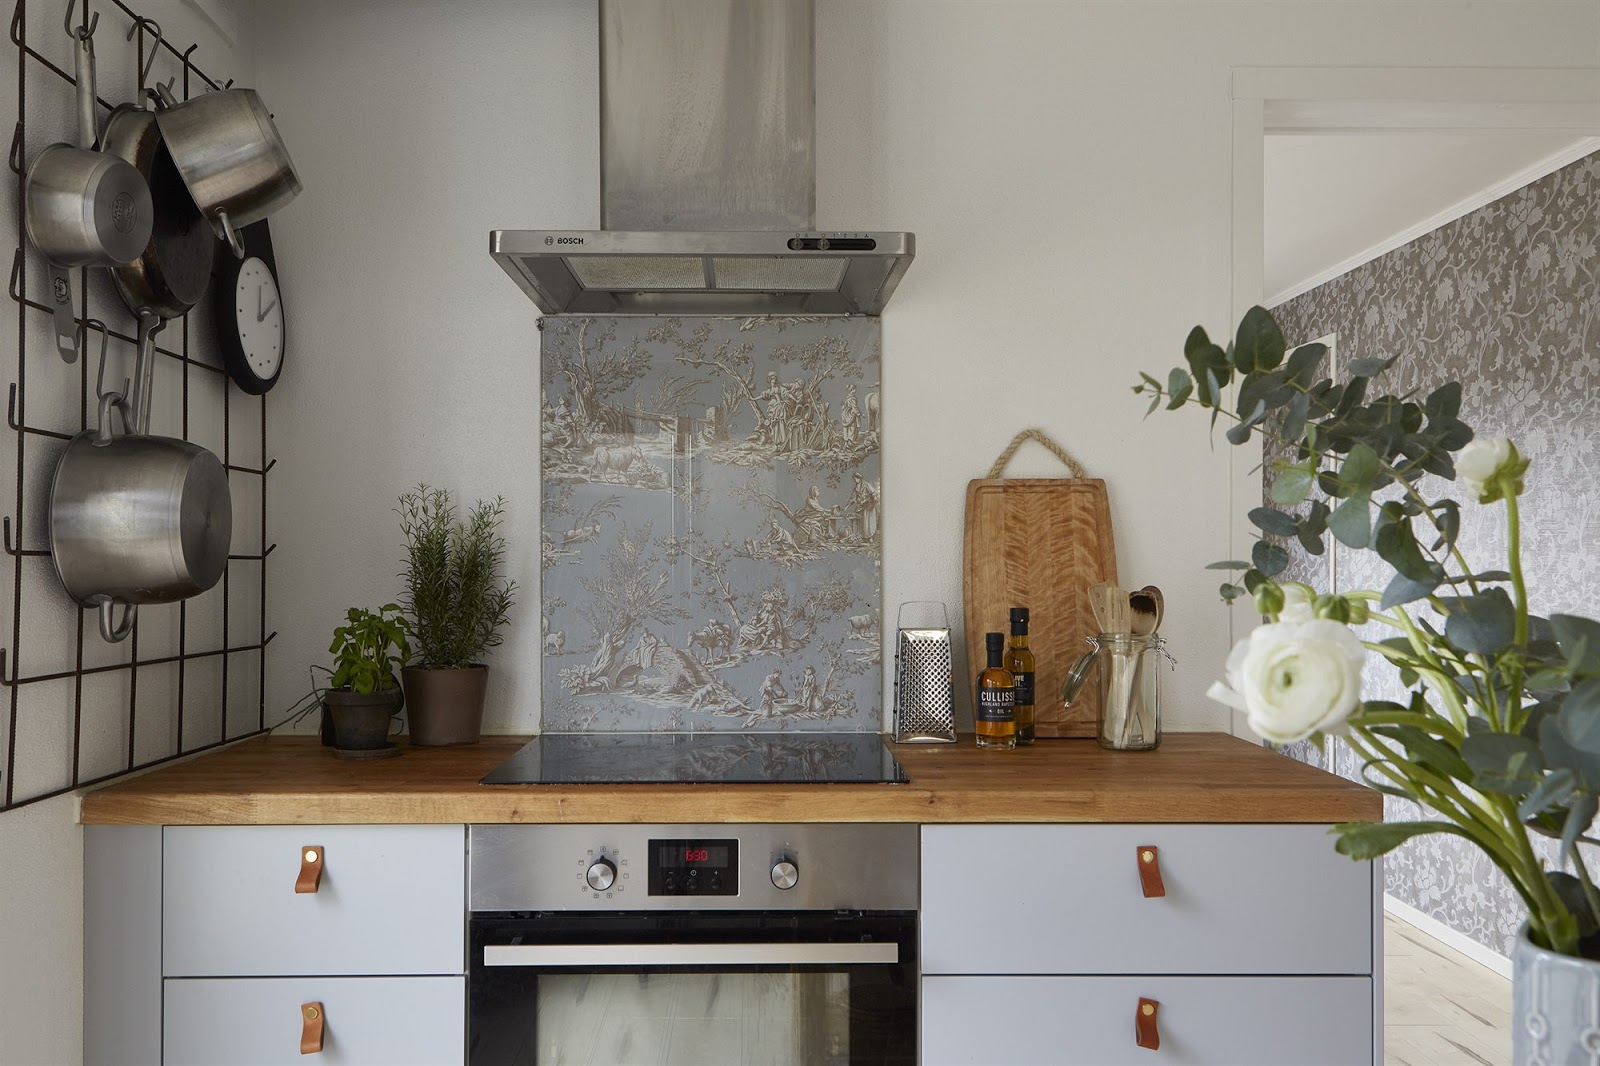 Kungsbacka kitchen -  Has Decades Old Structures That Seem Unforgivable To The Modern Eye But Really All It Takes Is A Little Imagination Take This Ol Country Kitchen